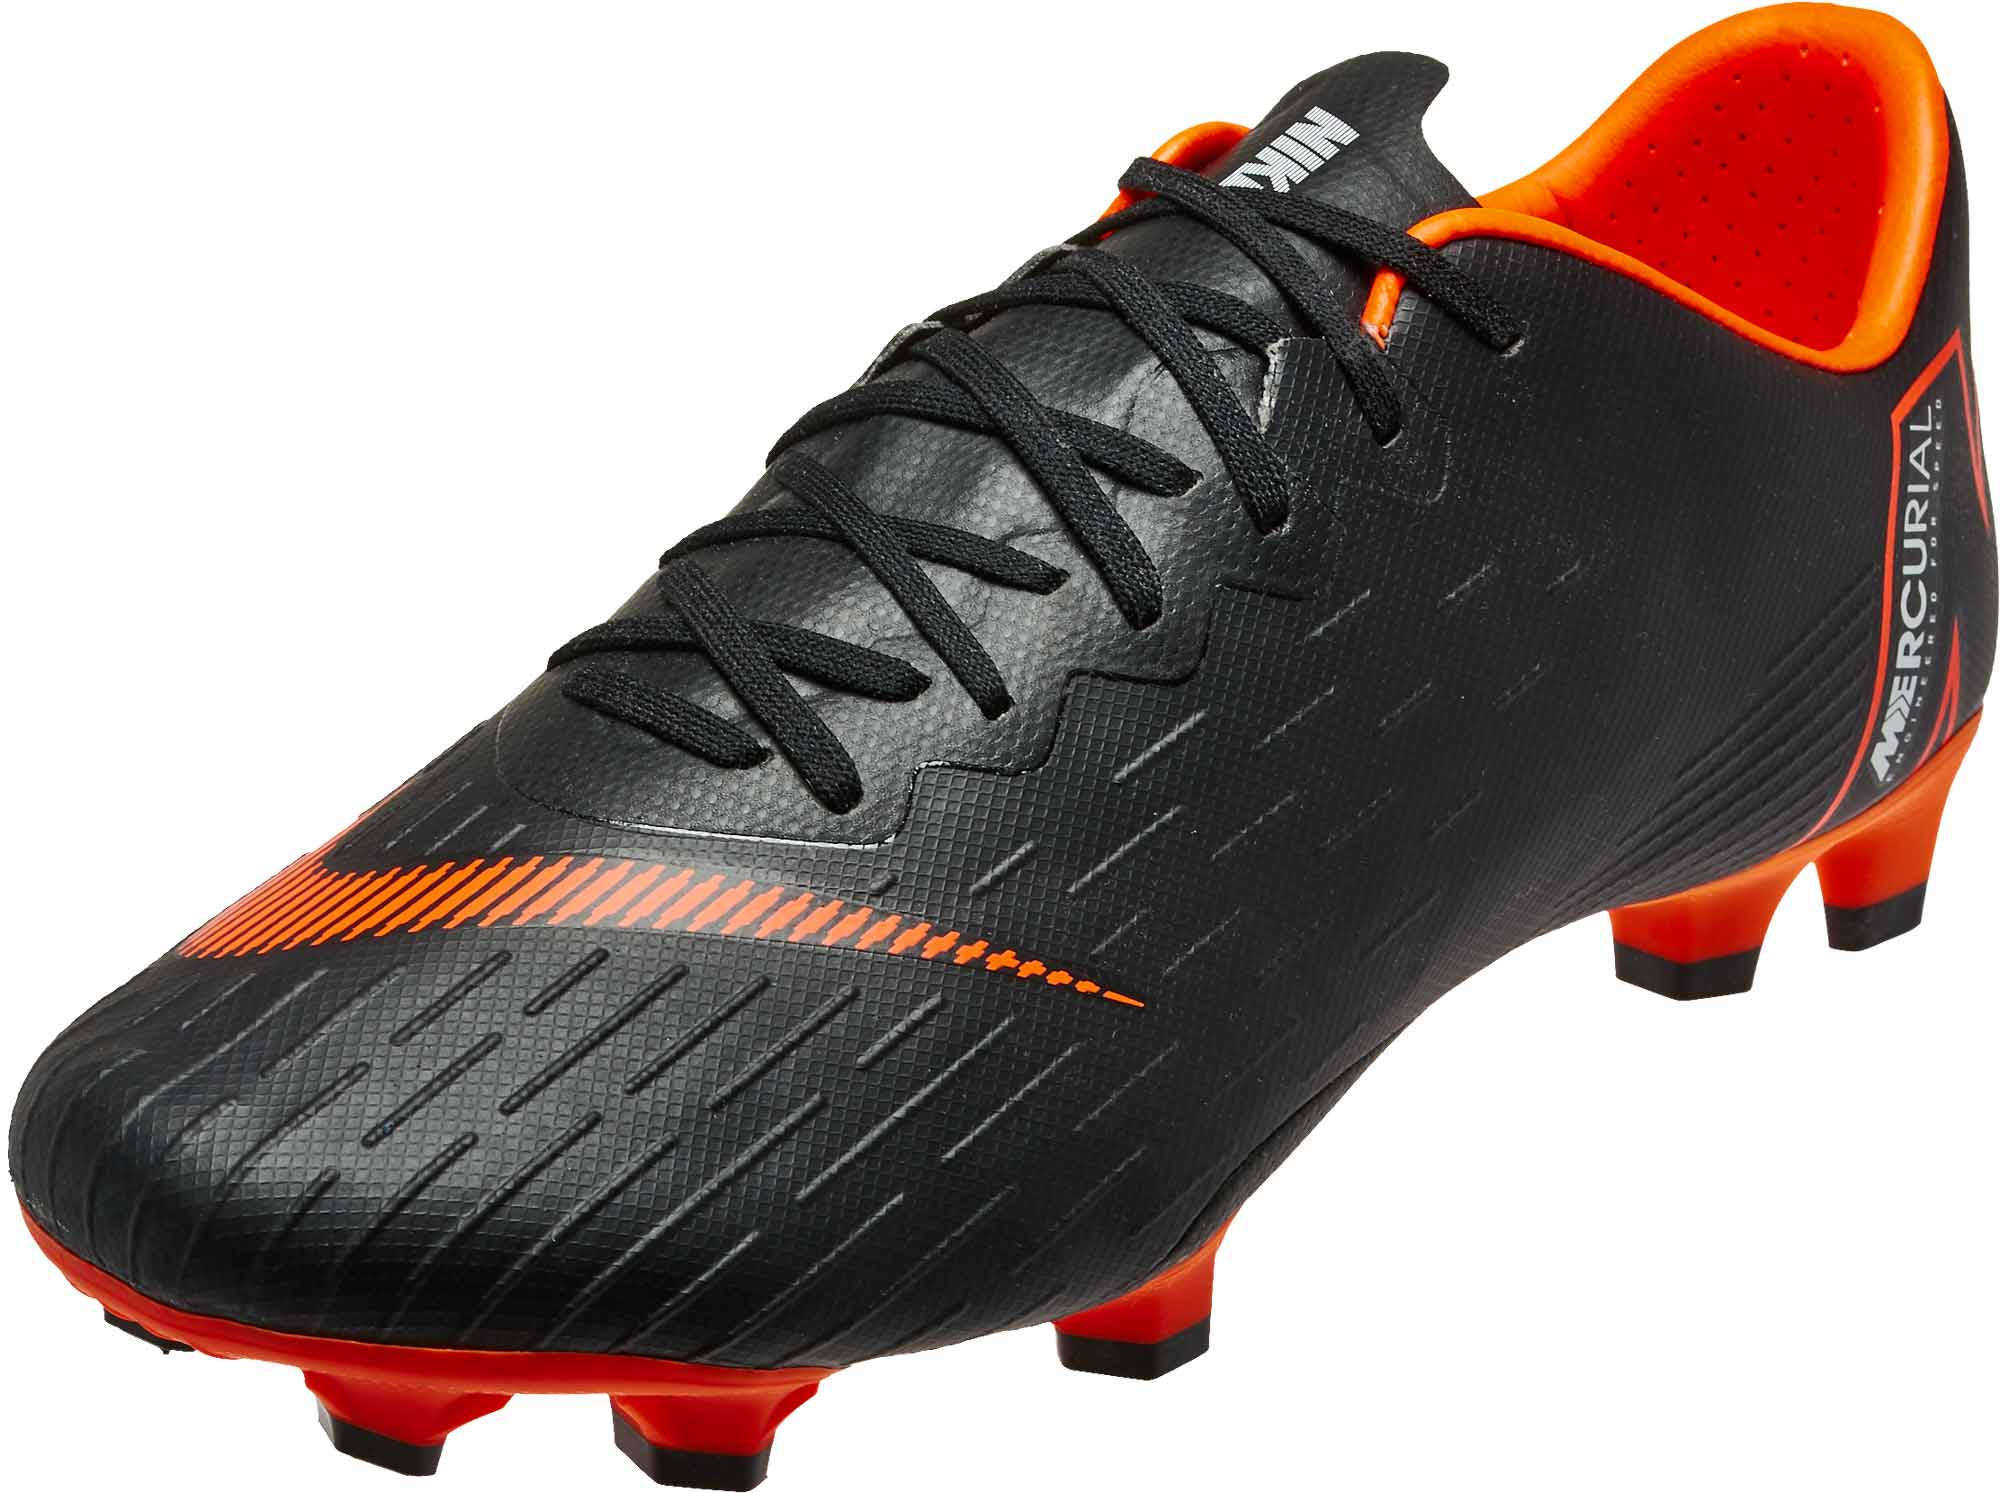 e3079e7d55b Nike Vapor 12 Pro FG - Black Total Orange - SoccerPro